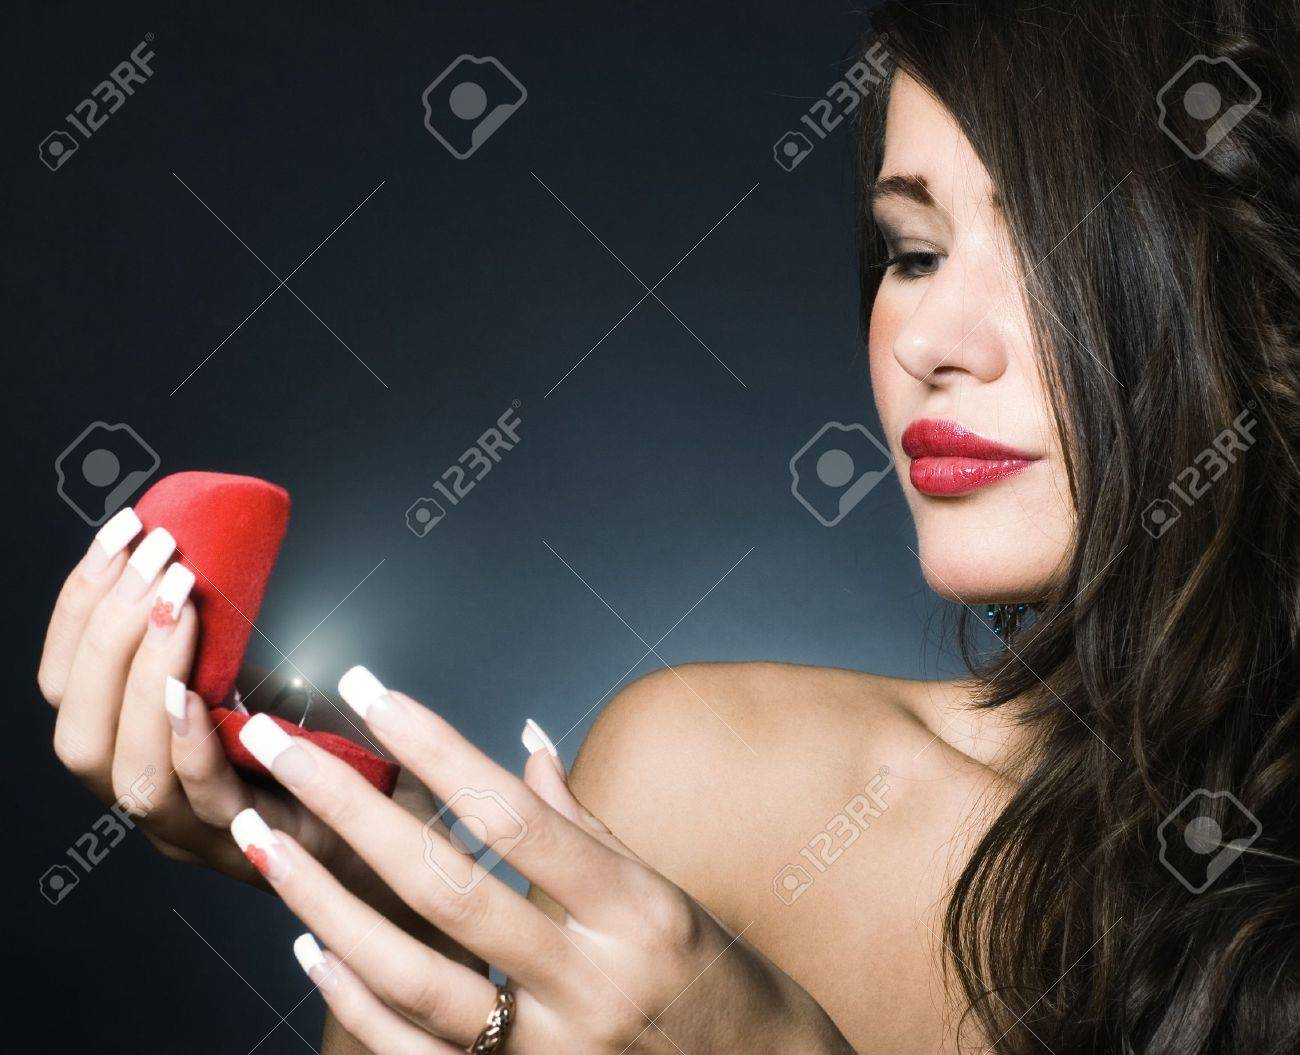 Jewel in the open case and admired woman. Stock Photo - 10936638